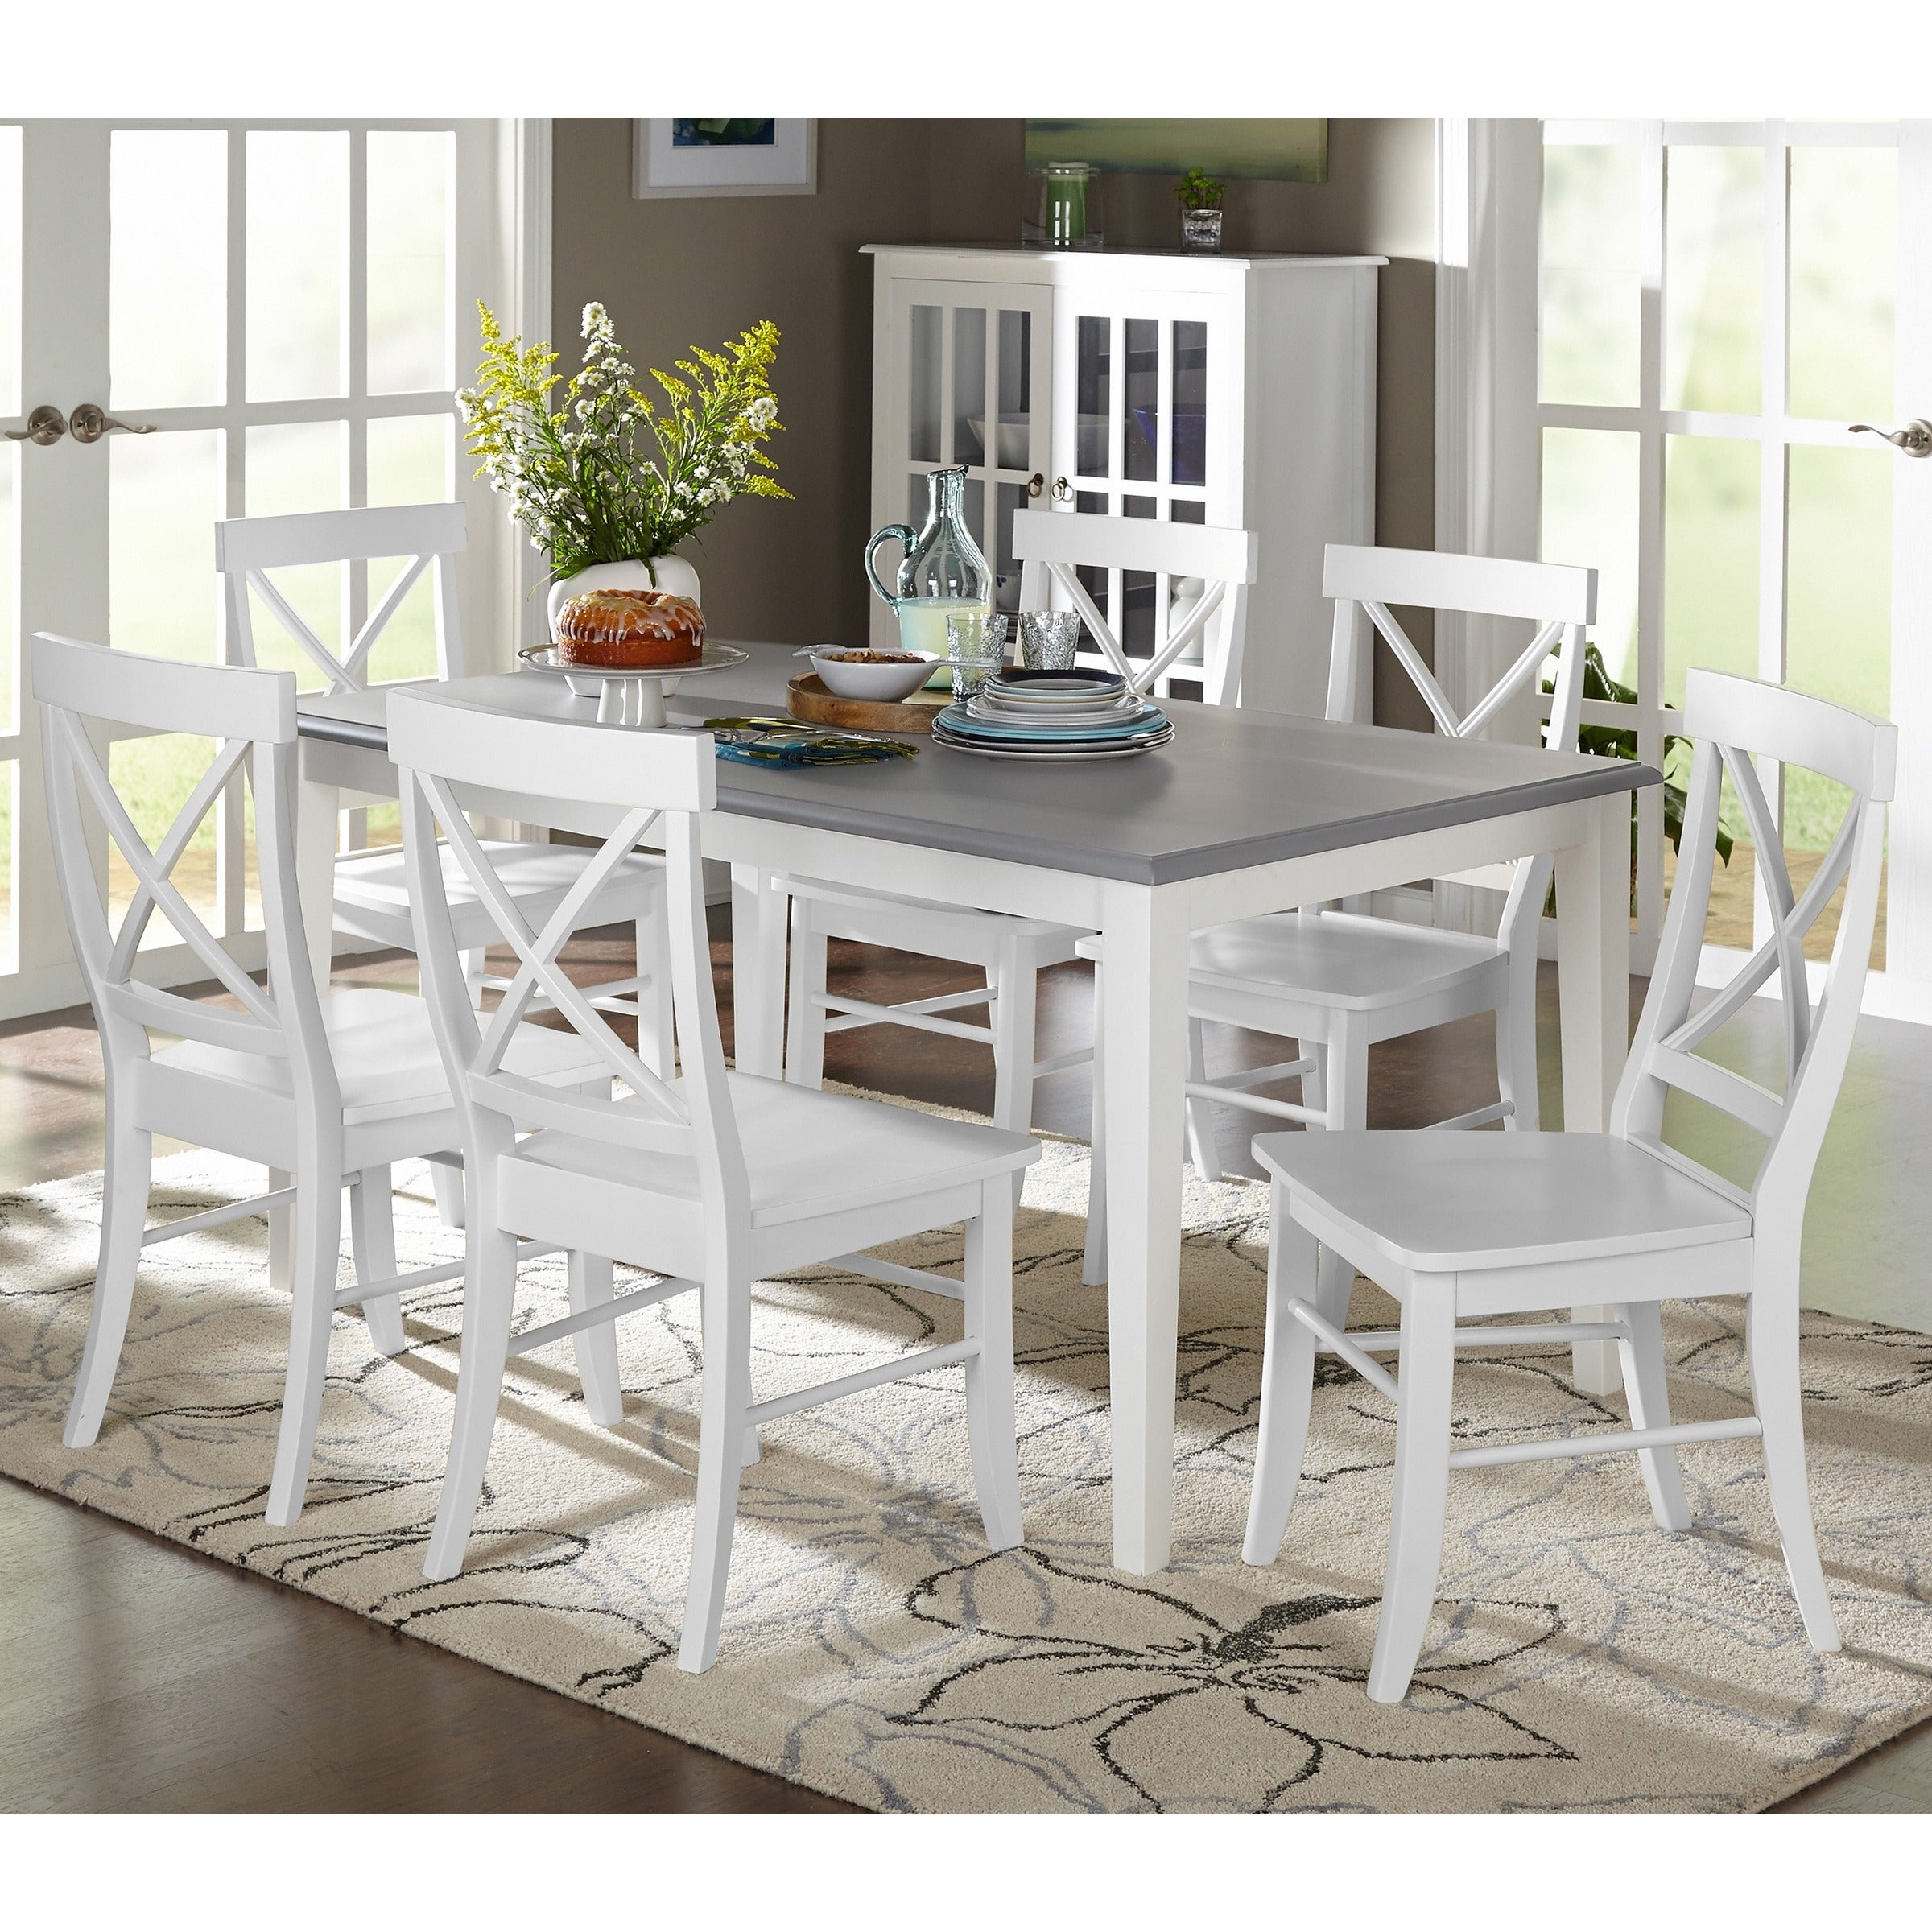 Buy 7 Piece Sets Kitchen & Dining Room Sets Online At Overstock Within Current Autberry 5 Piece Dining Sets (Image 7 of 20)